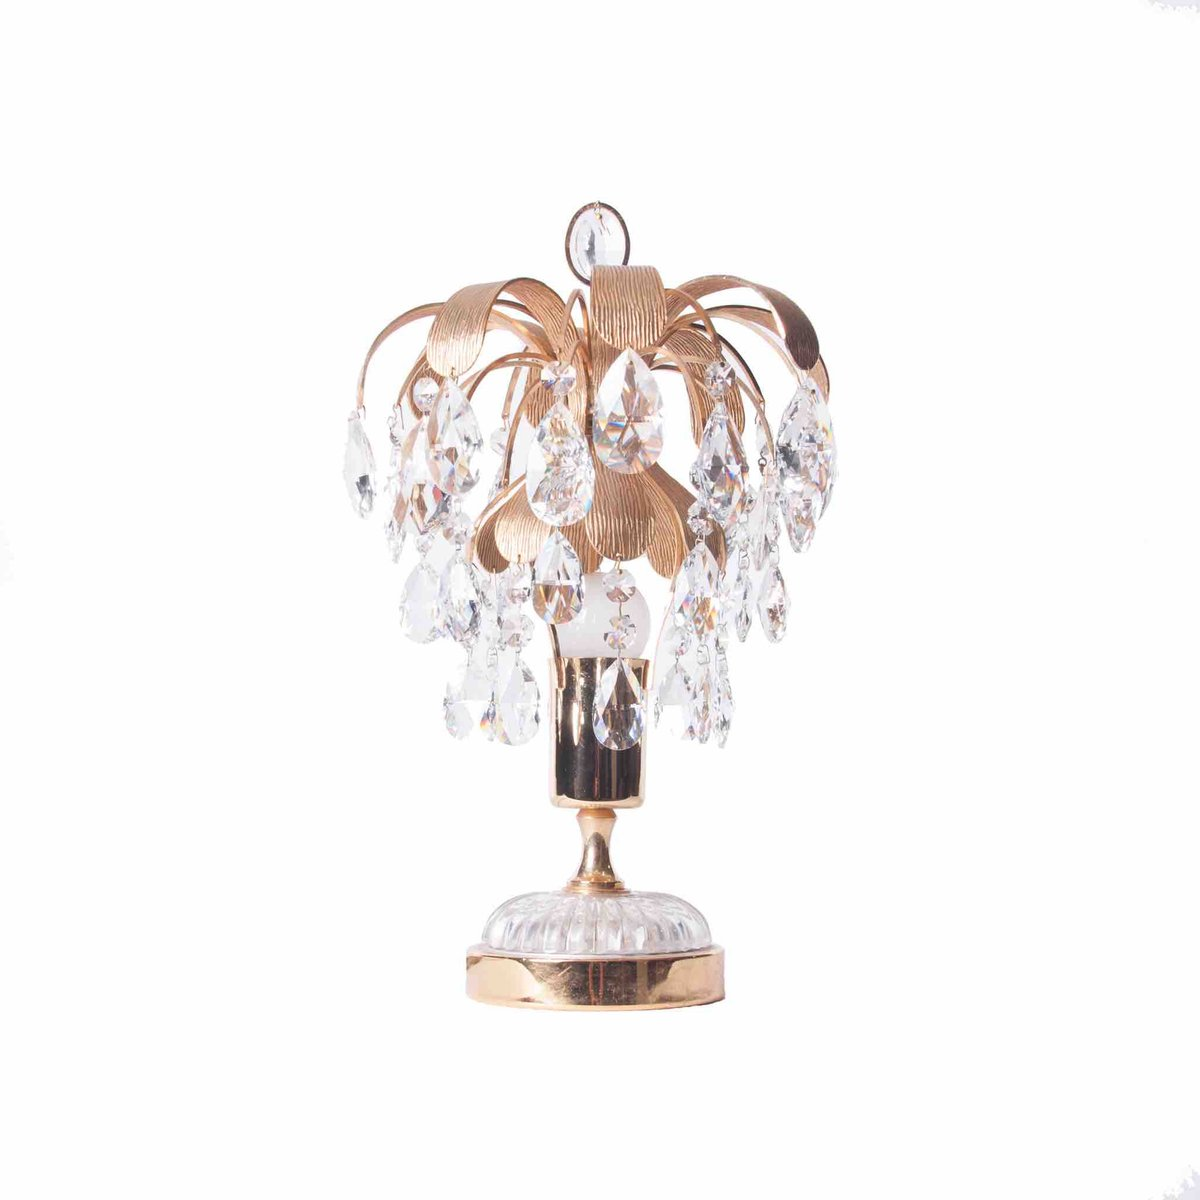 Brass crystal glass table lamp from palwa 1960s for sale at pamono brass crystal glass table lamp from palwa 1960s aloadofball Images